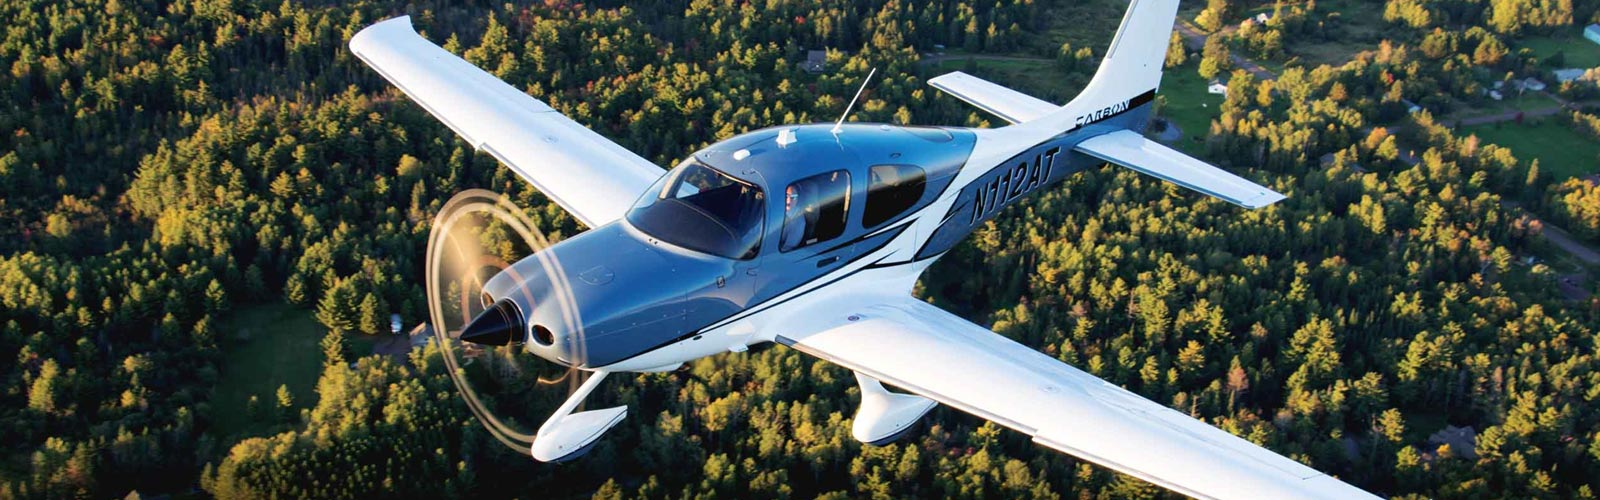 Student Pilot Handbook, guidebooks for learning to fly, passing flight reviews and more